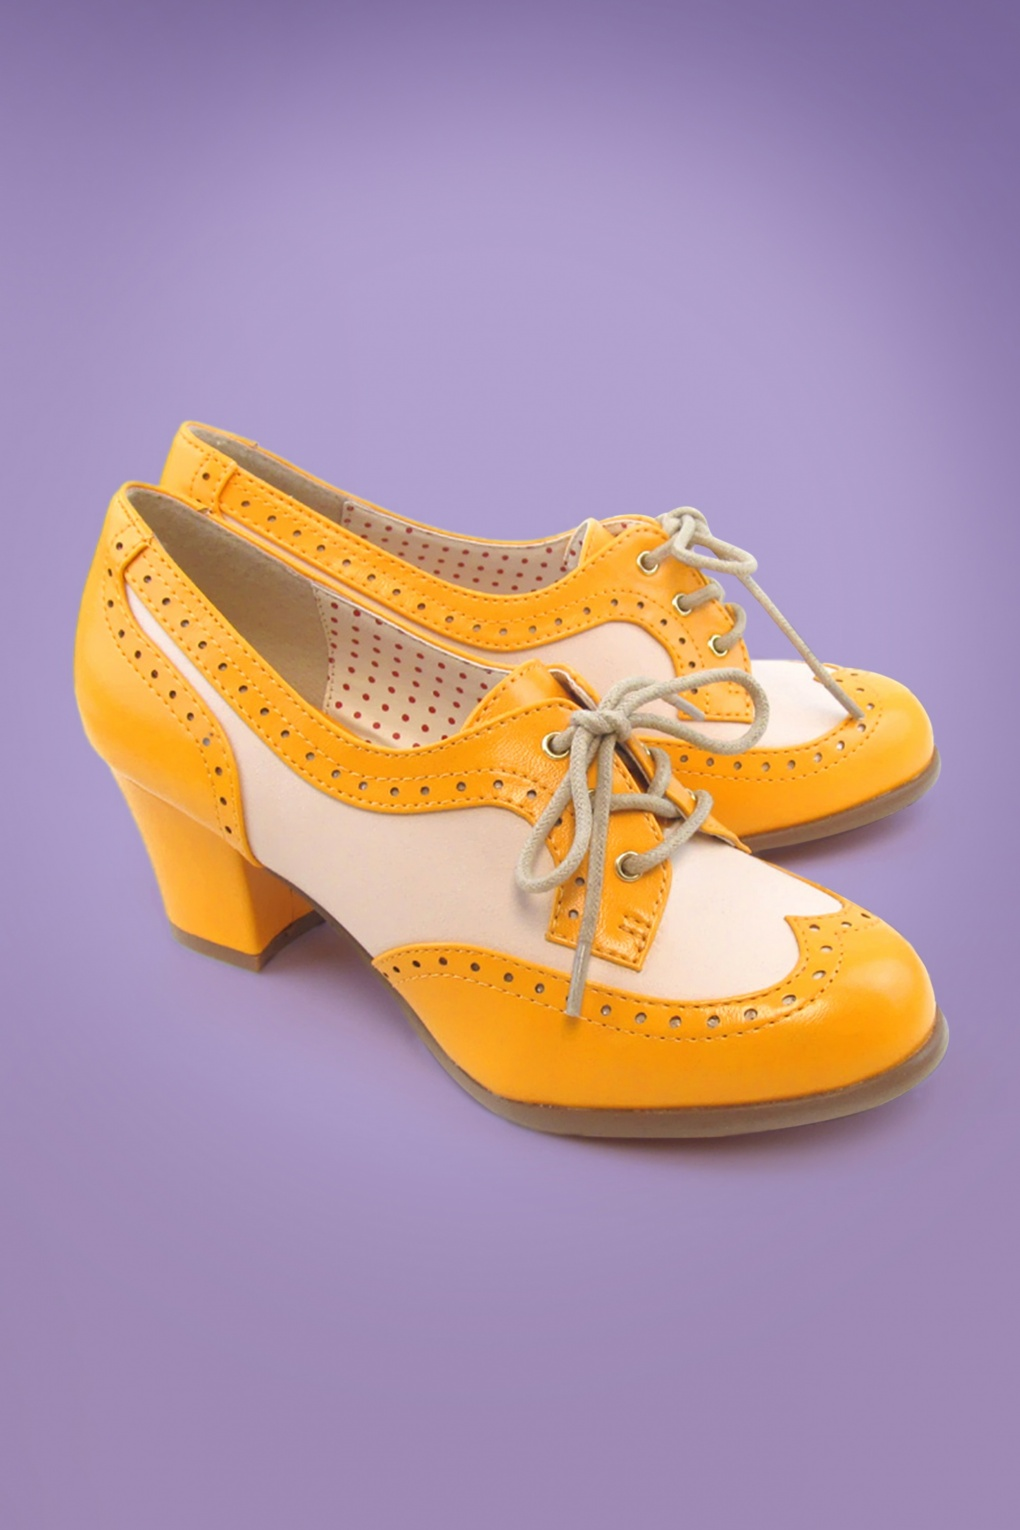 1930s Style Shoes – Art Deco Shoes 40s Remmy Oxford Shoes in Mustard �68.49 AT vintagedancer.com